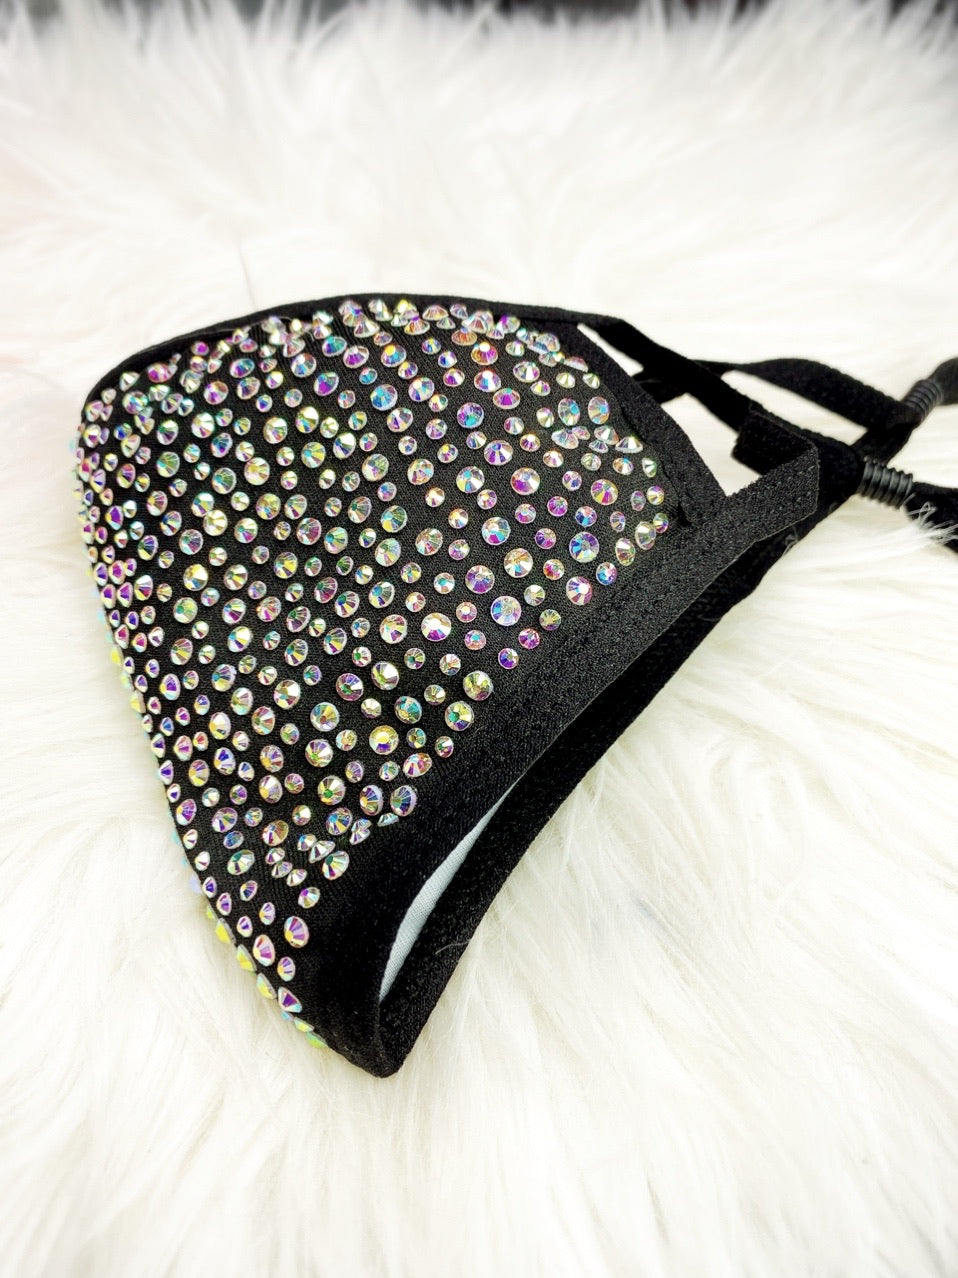 SHINE - Full Bling Crystal ~ Reusable Face Mask Protection (Black w/AB Crystals)